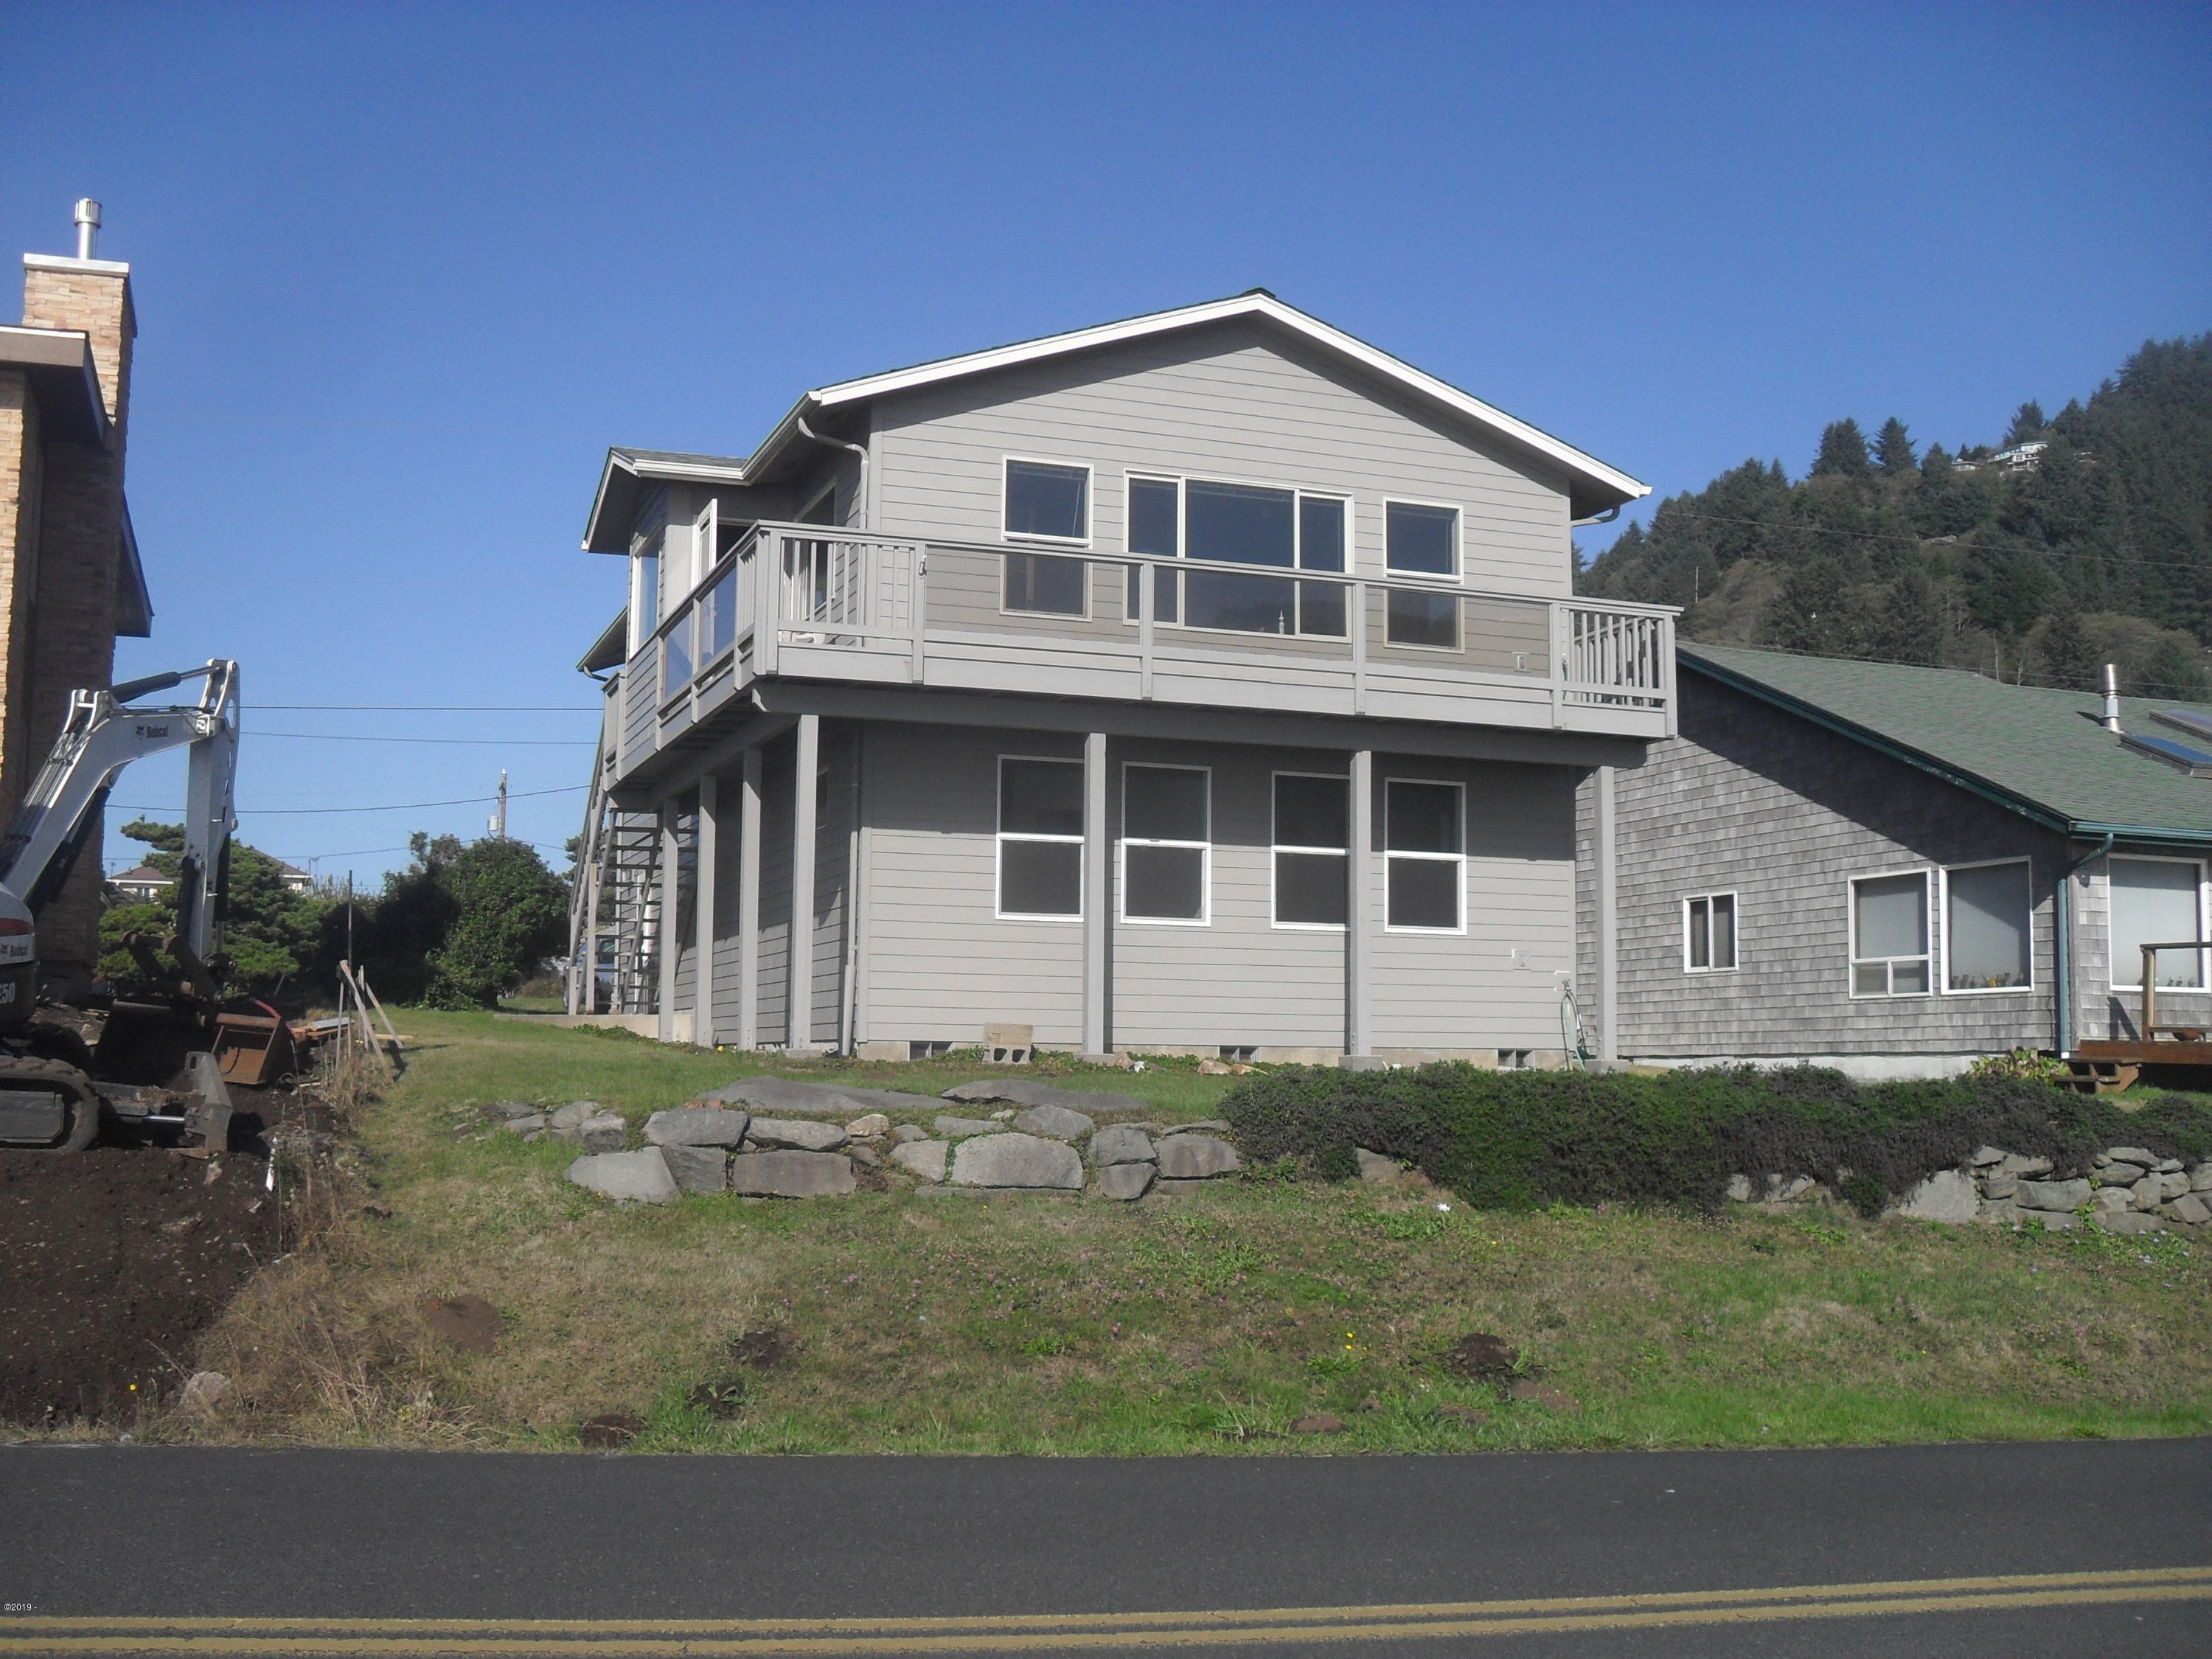 260 W 1st St, Yachats, OR 97498 - south side/bay side